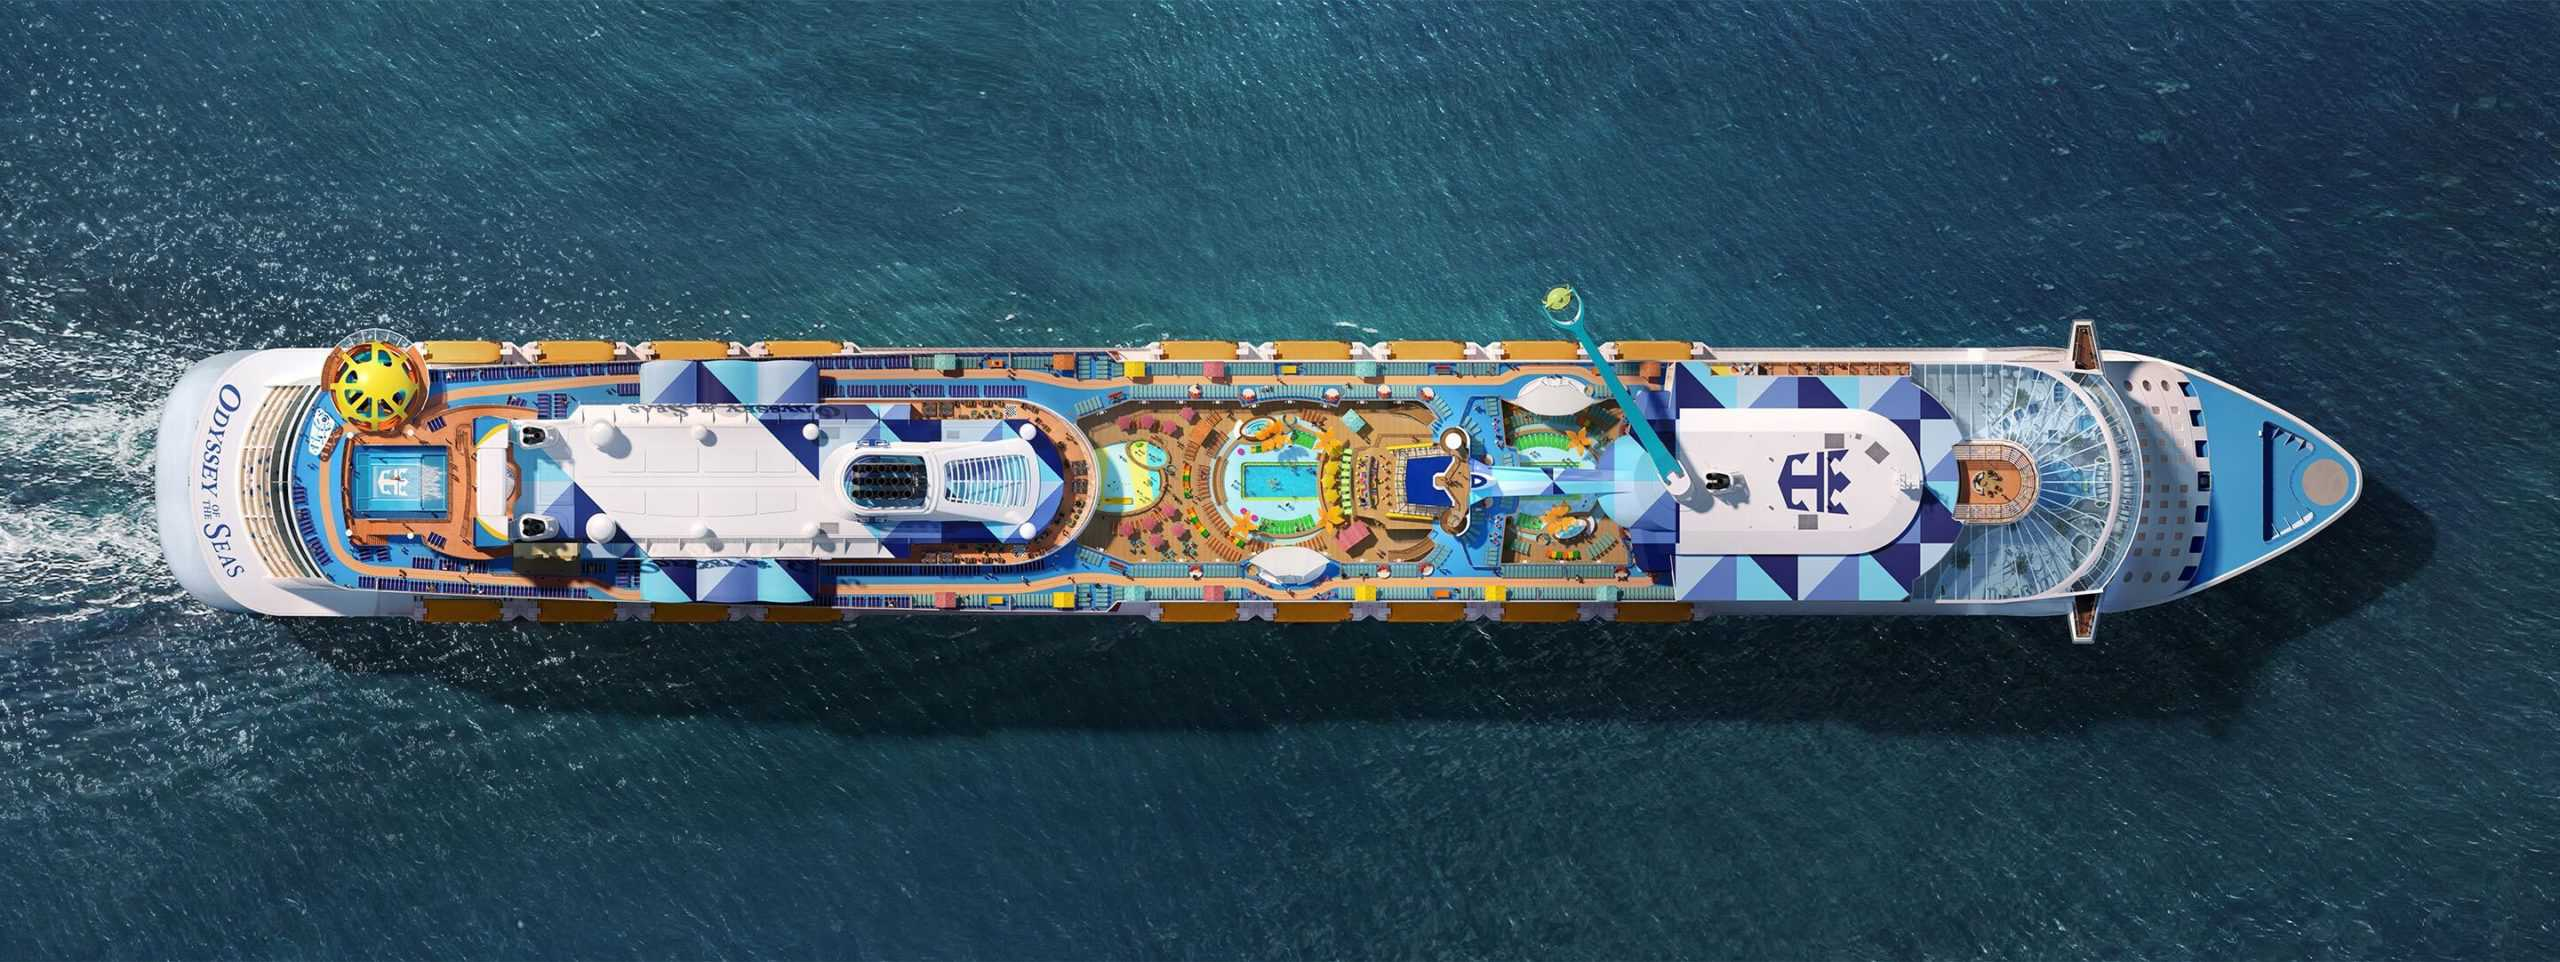 aerial-view-odyssey-of-the-seas-full-ship